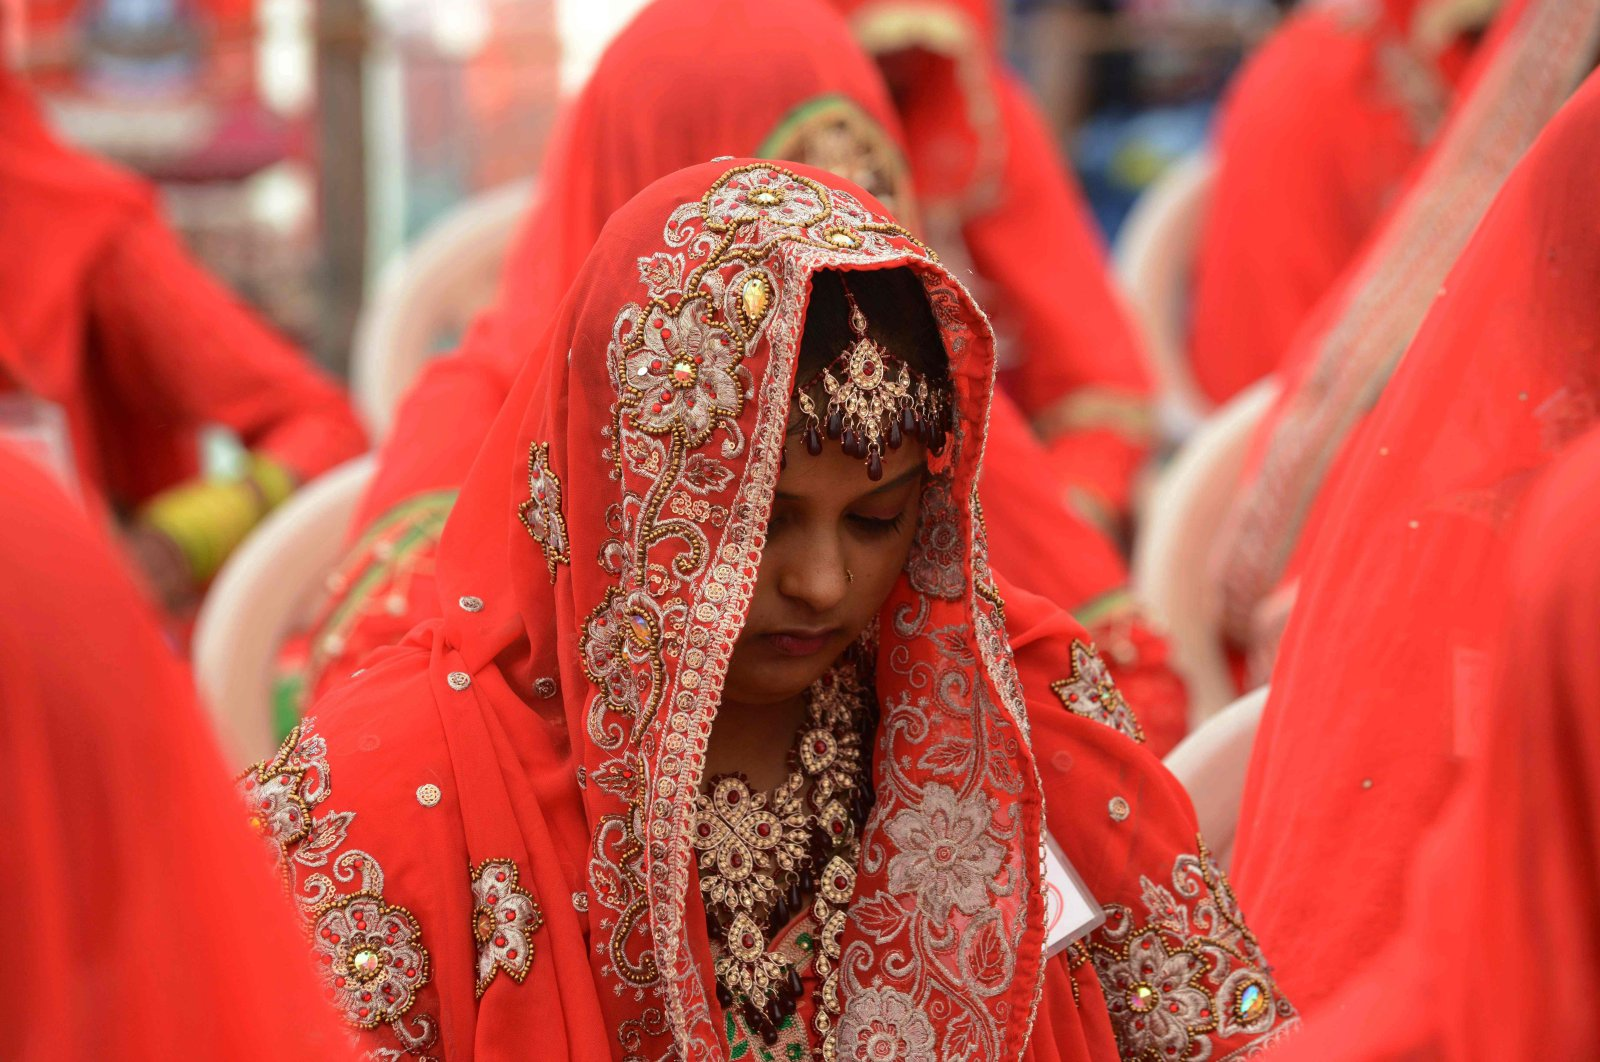 An Indian bride looks on during a mass wedding ceremony in Ahmedabad, India, Nov. 20, 2016. (AFP Photo)